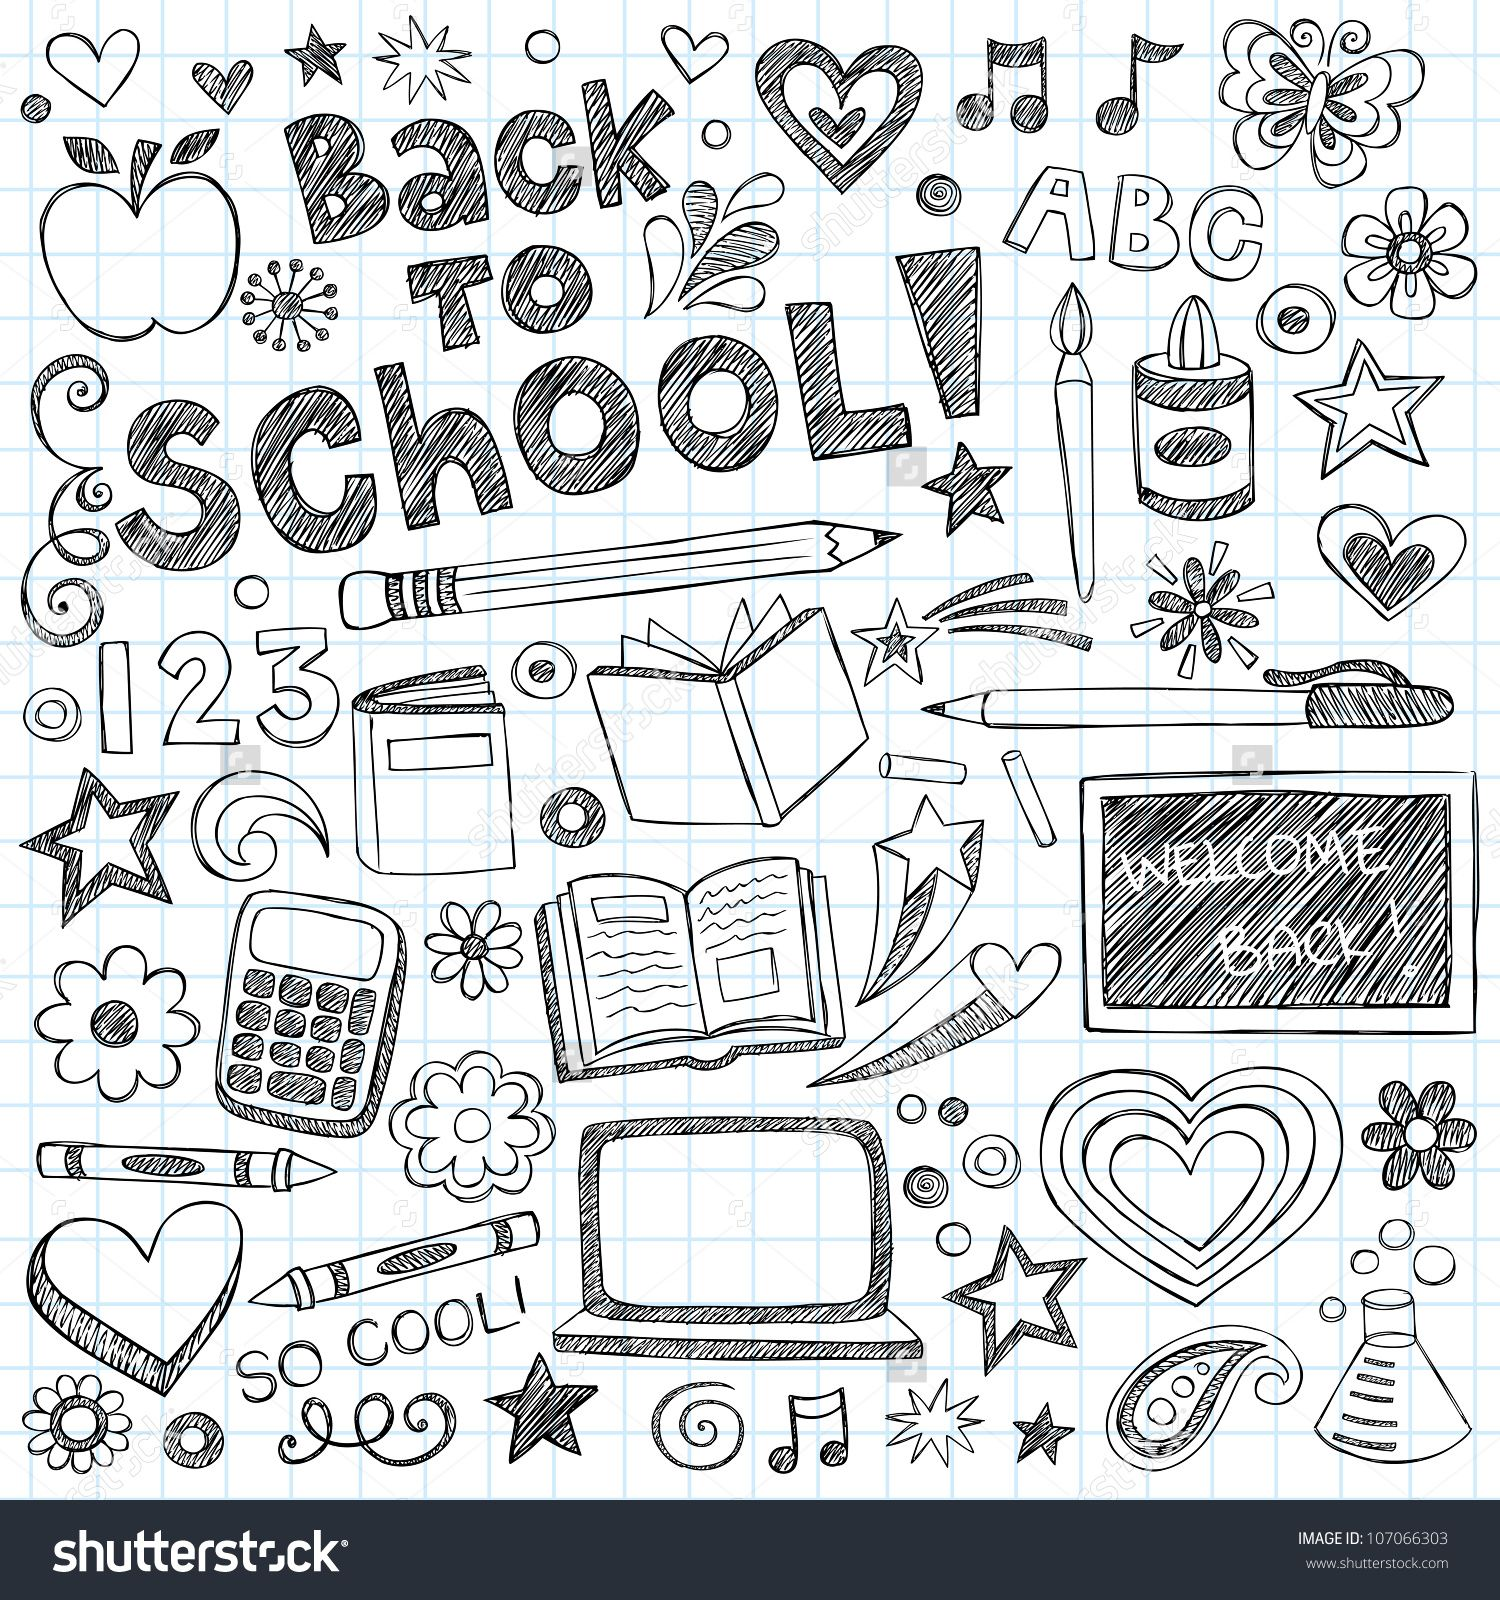 Back To School Supplies Sketchy Notebook Doodles With Lettering Shooting Stars And Swirls Hand Drawn Vector Illustration Design Elements On Lined